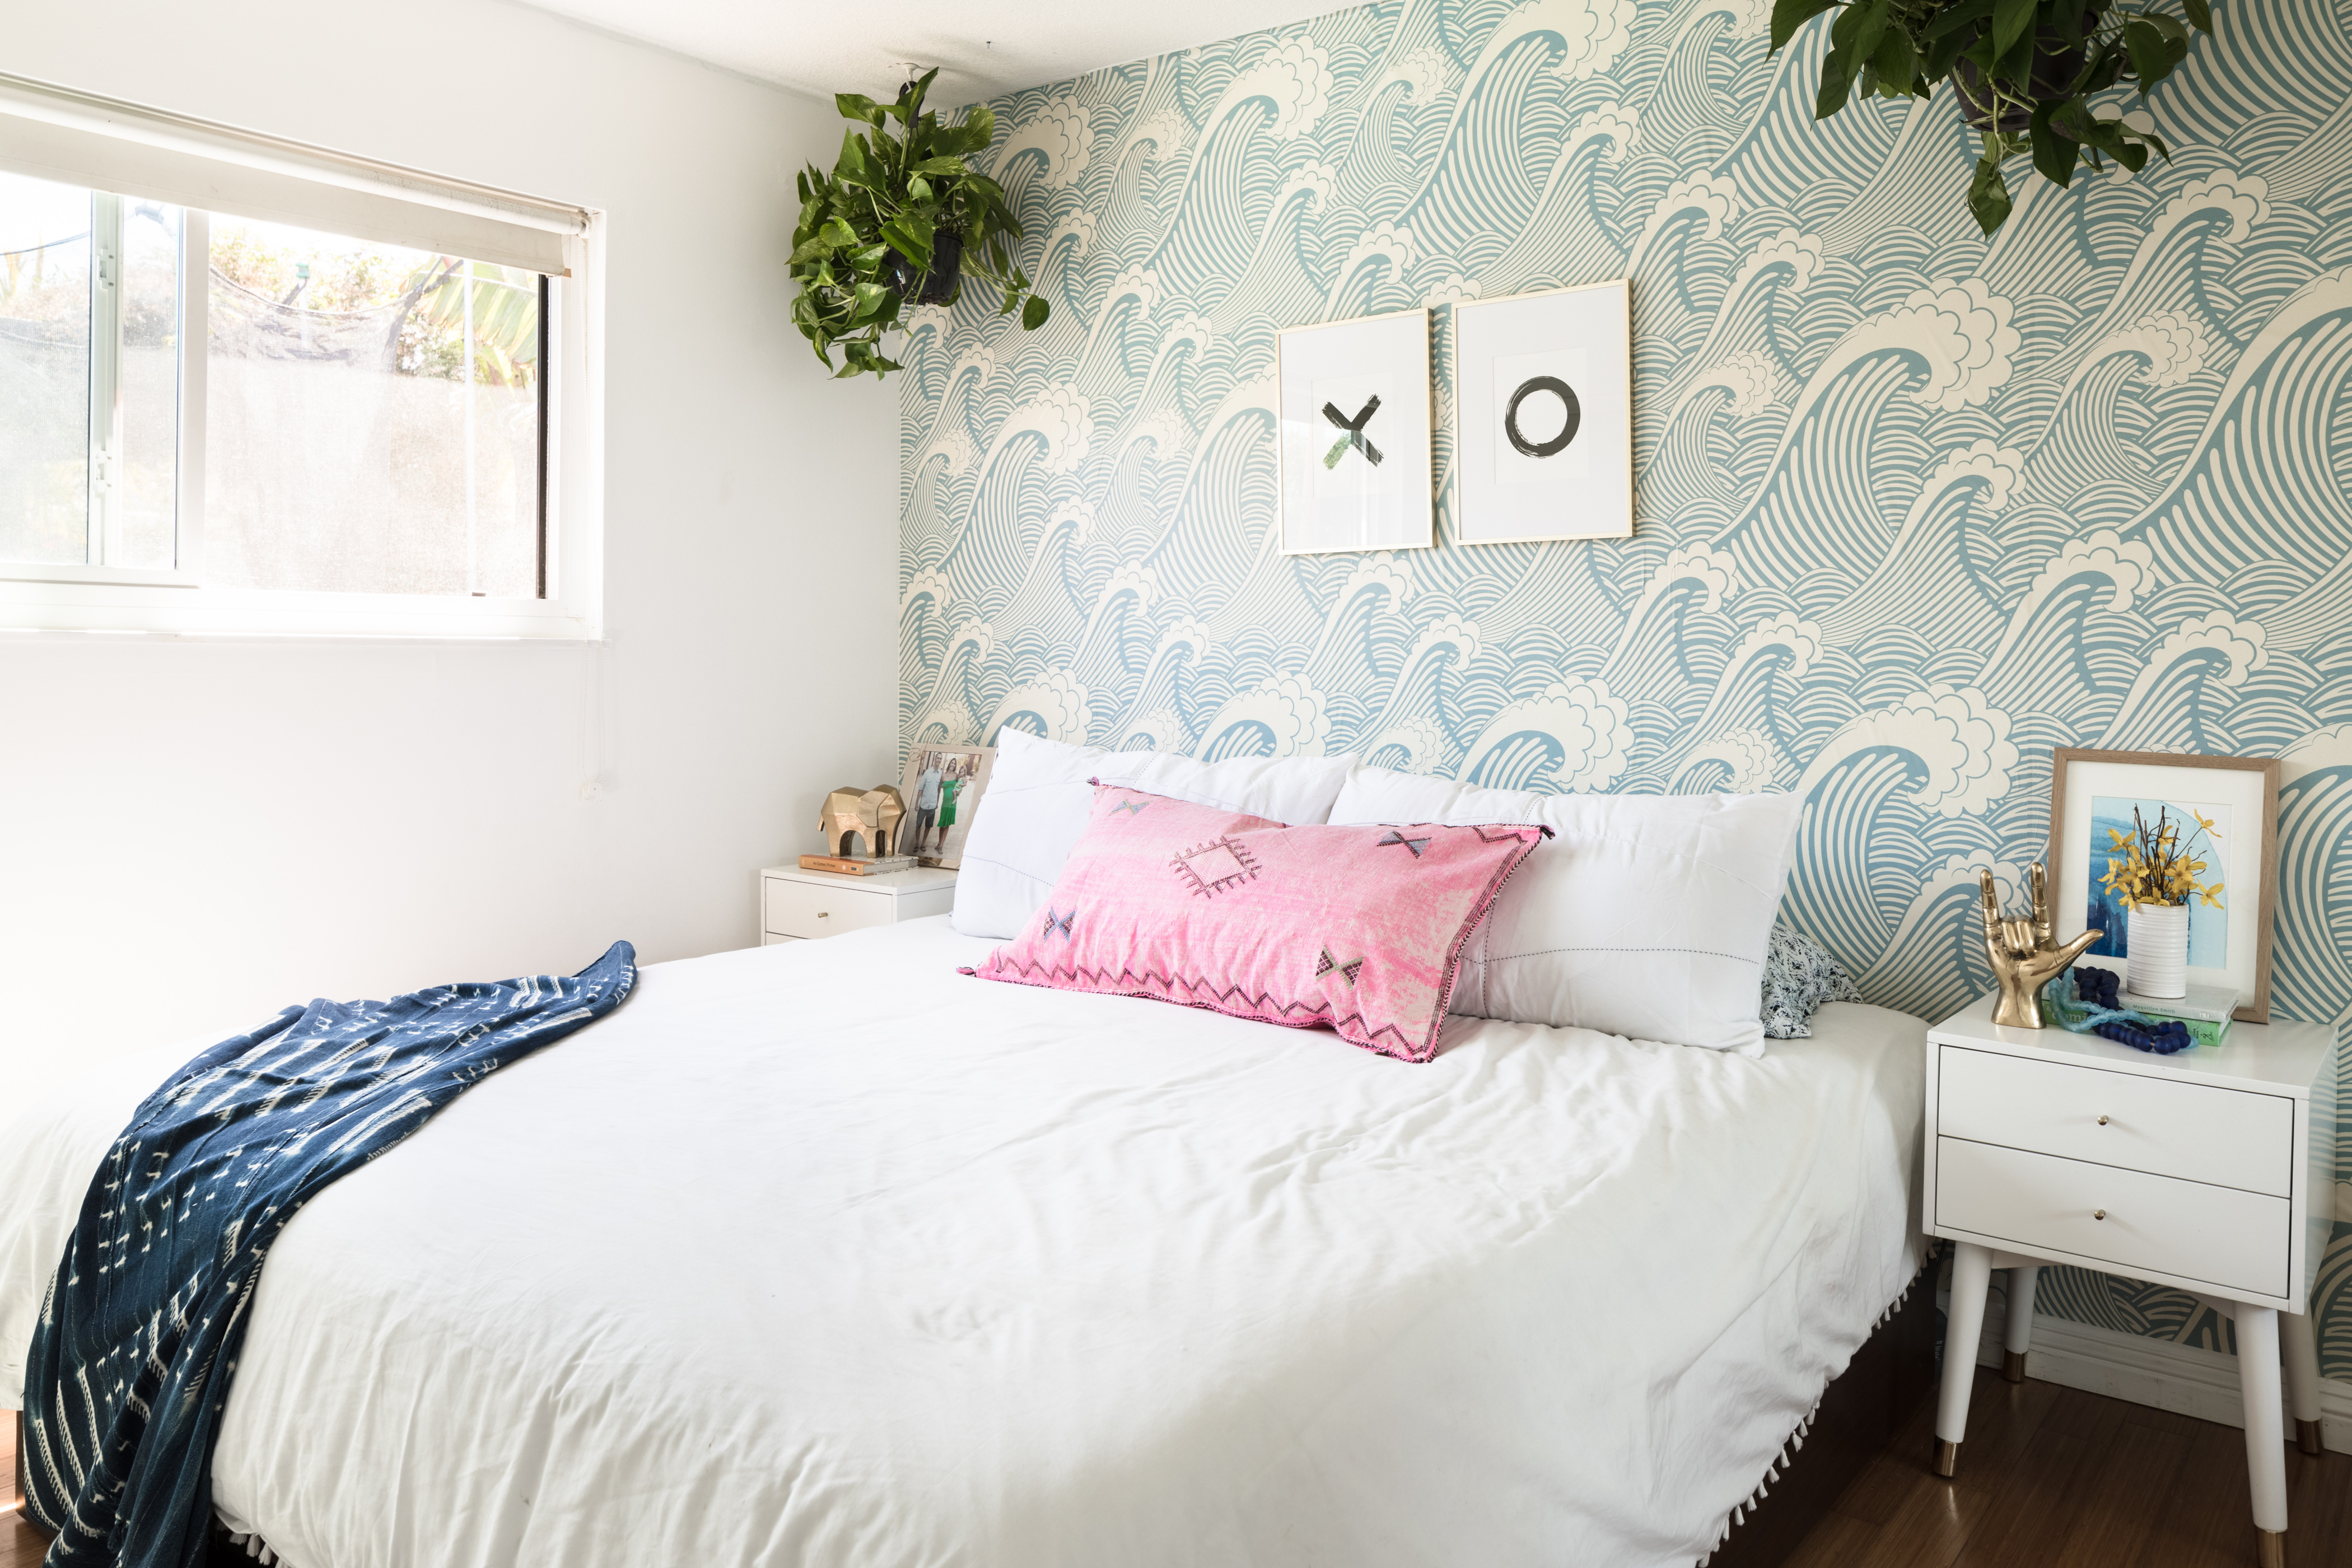 Bedroom Inspo and Ideas (Aren't You Curious?)